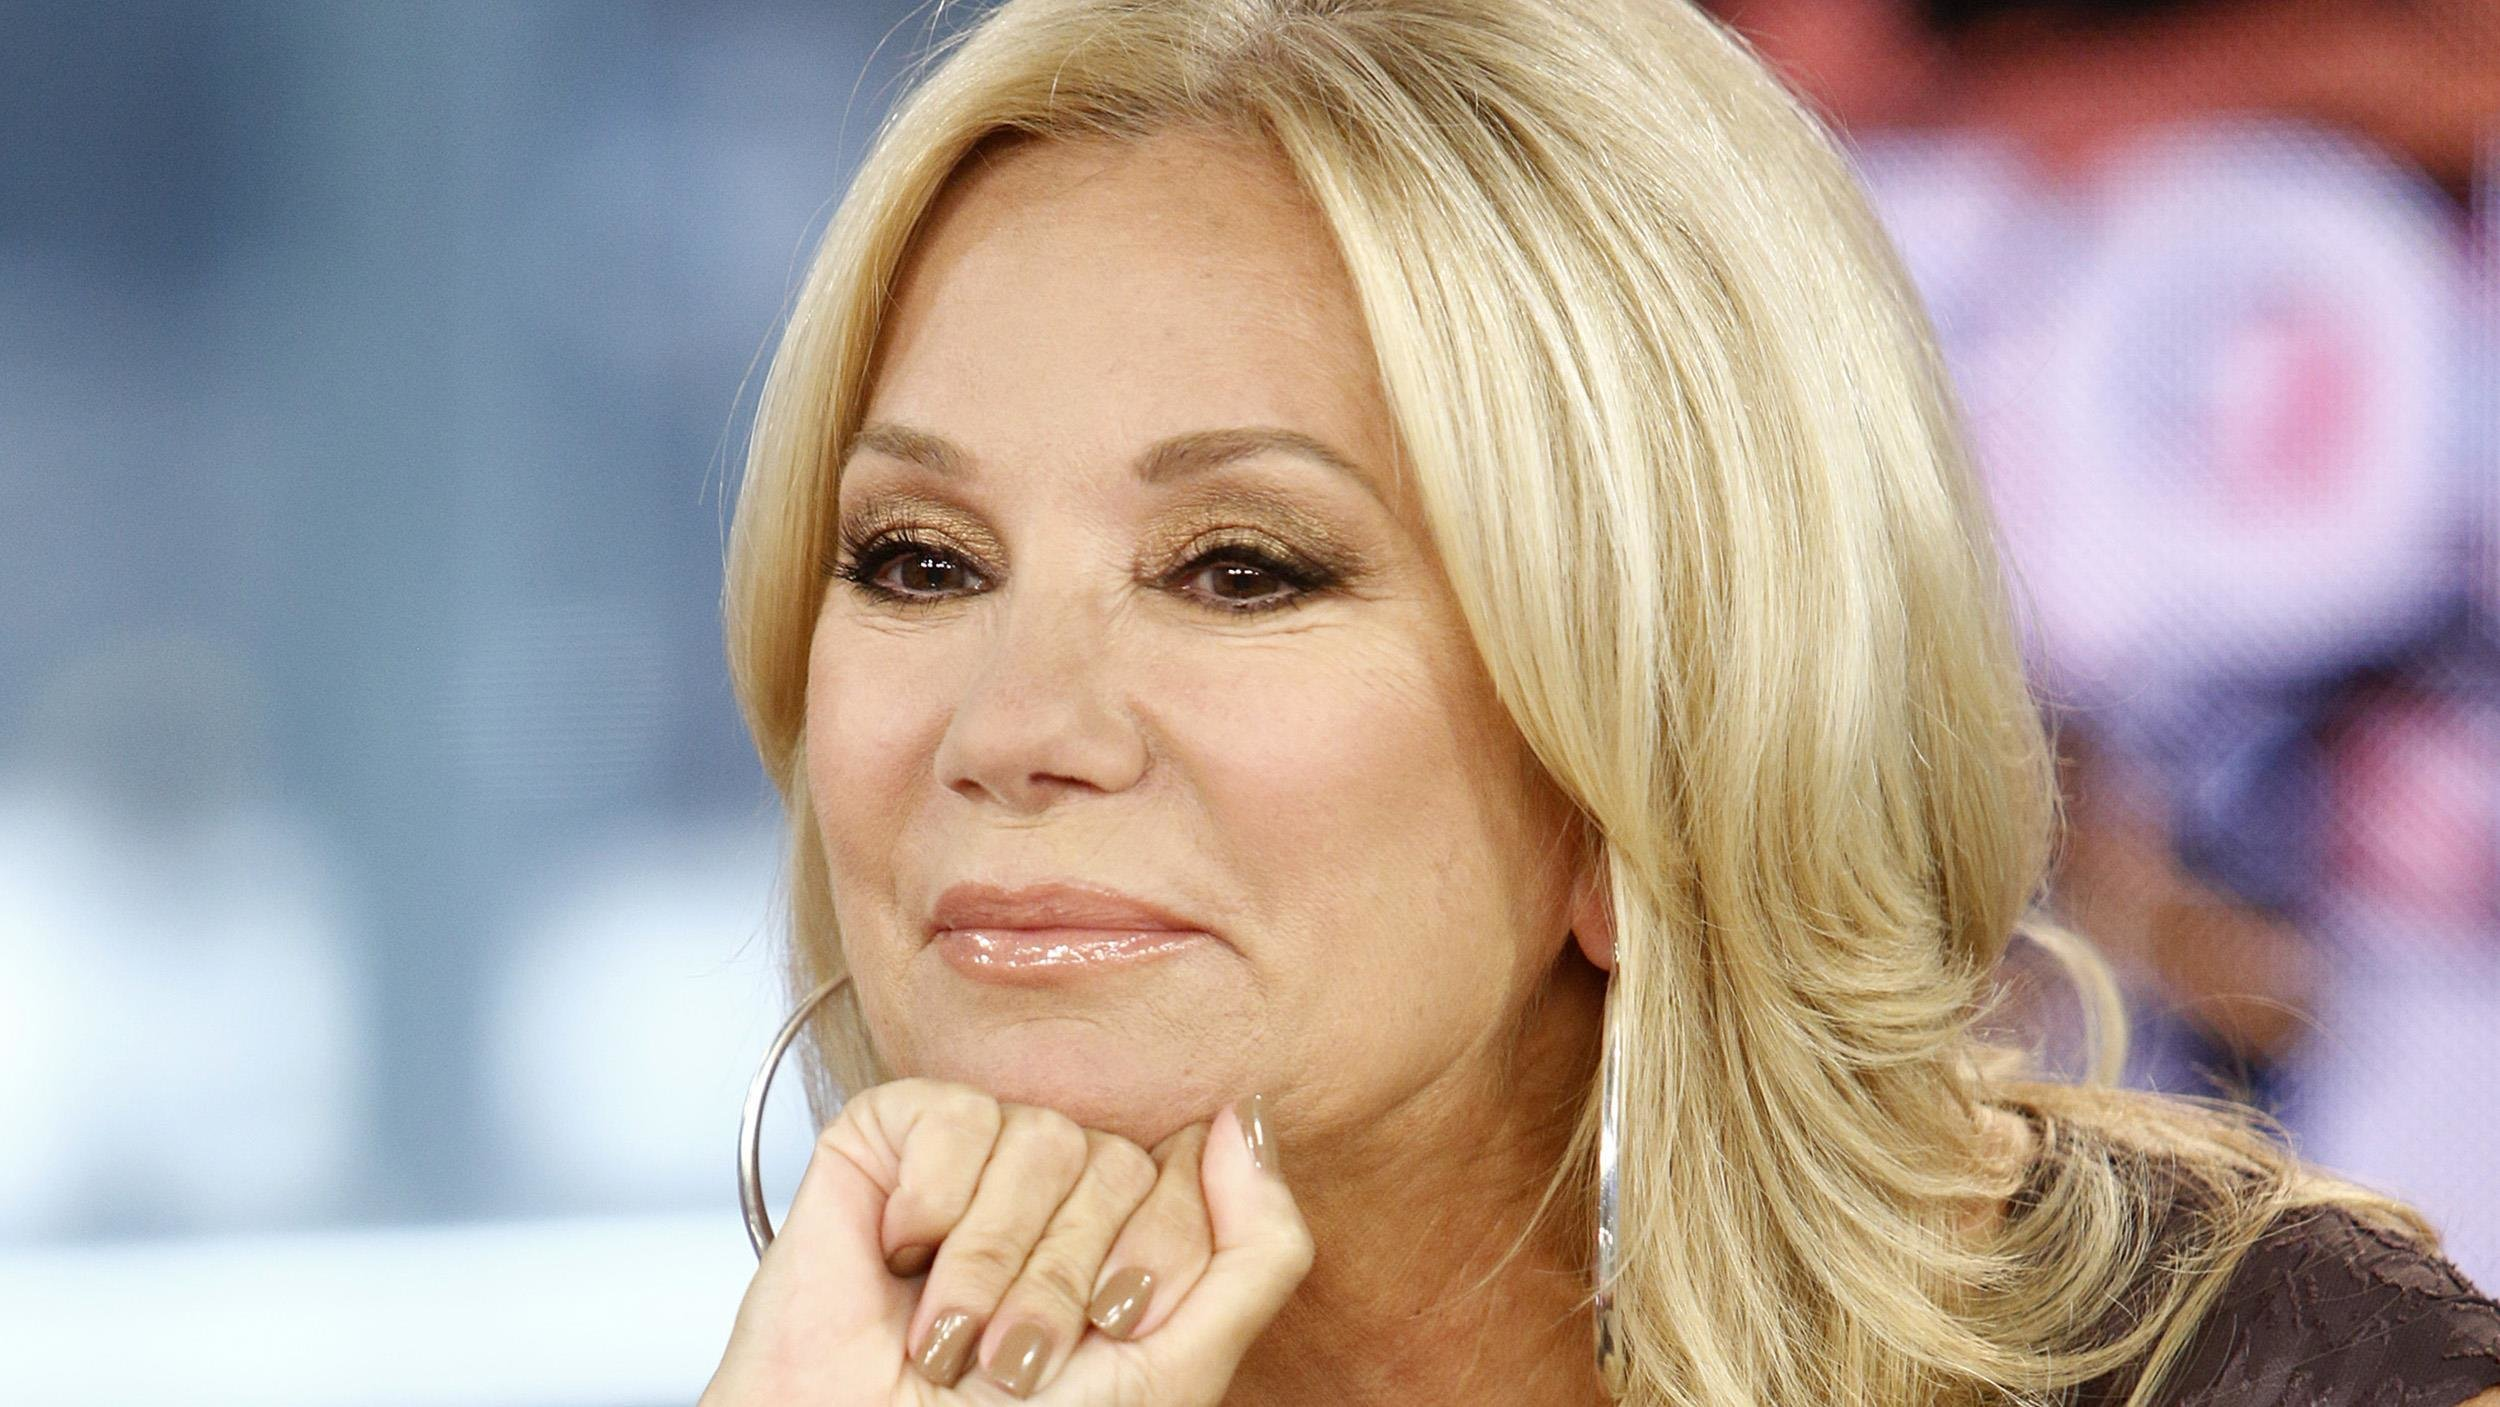 Free Kathie Lee Gifford S Eye Makeup Secrets Revealed In Wallpaper